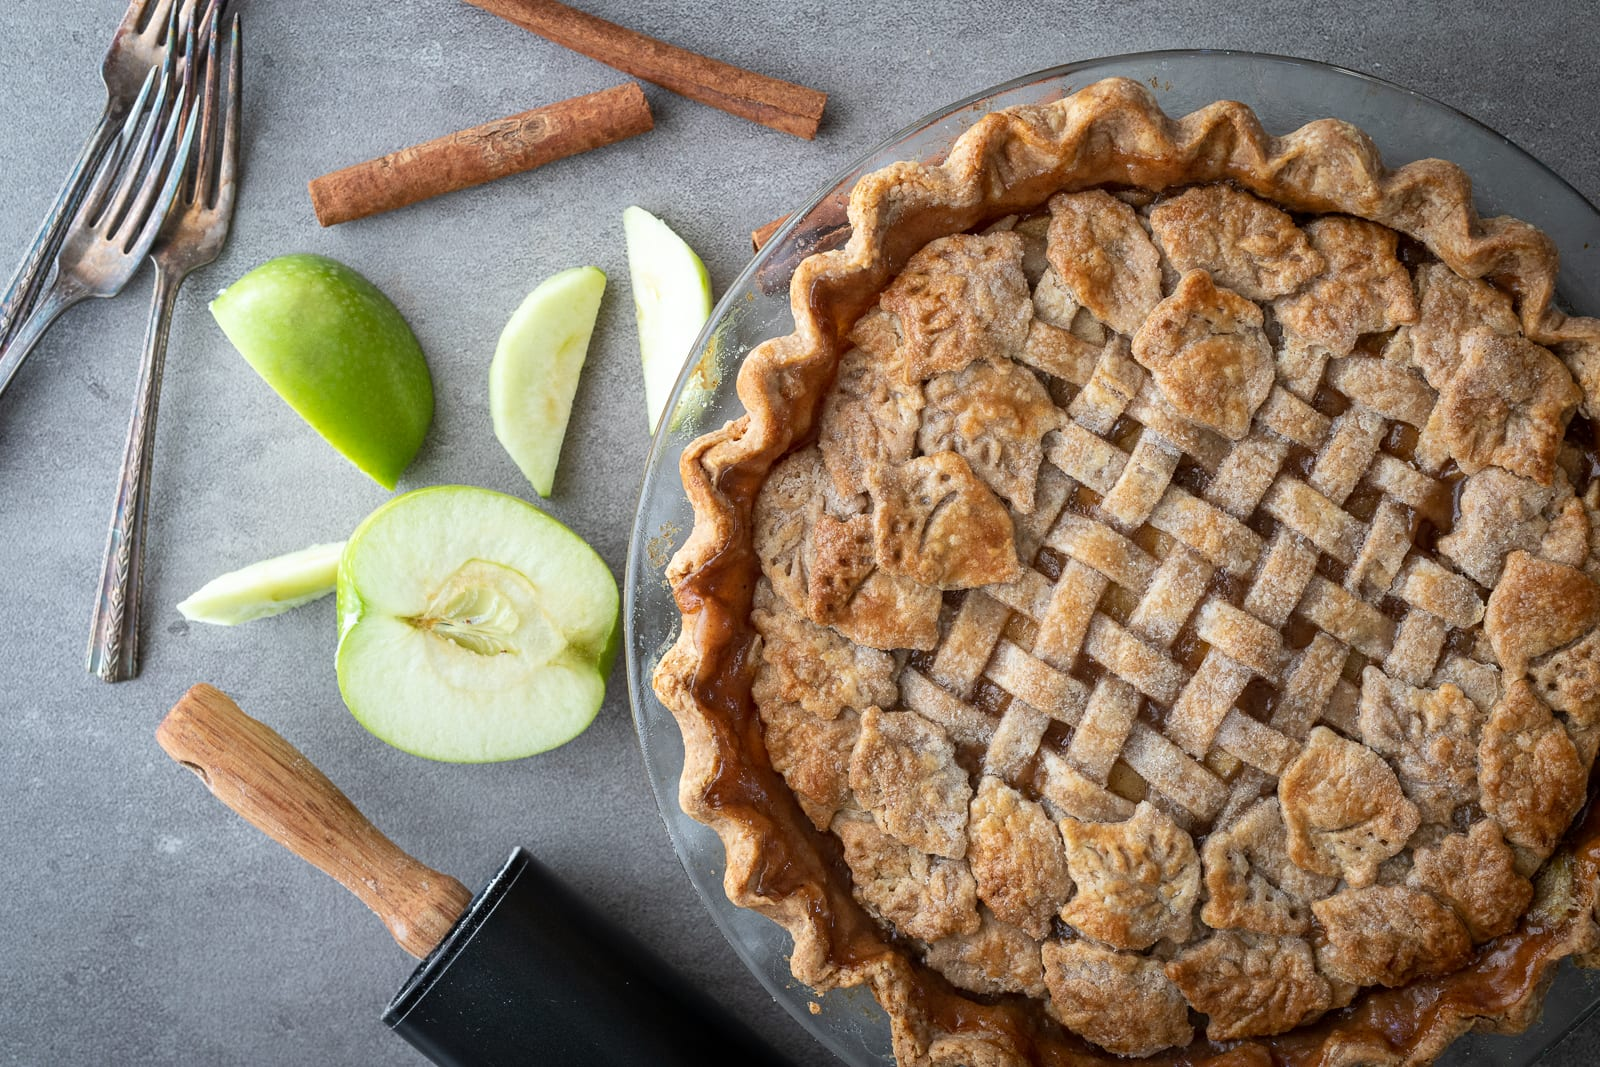 The perfect apple pie baked in glass pie plate with apples and cinnamon sticks on the side